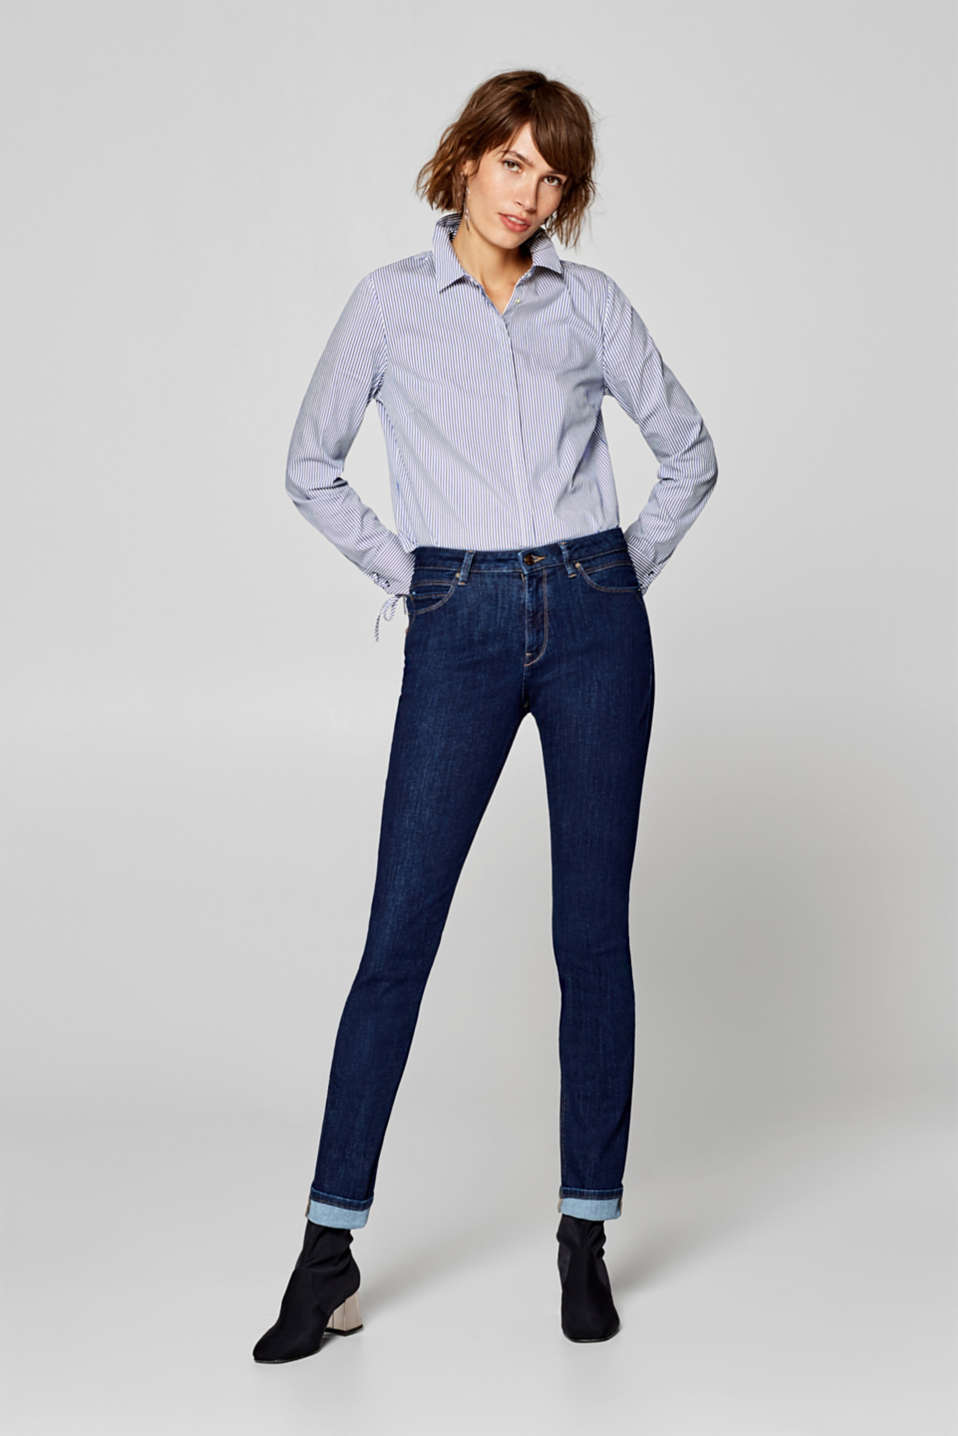 Esprit - Stretchy jeans with a high-rise waist